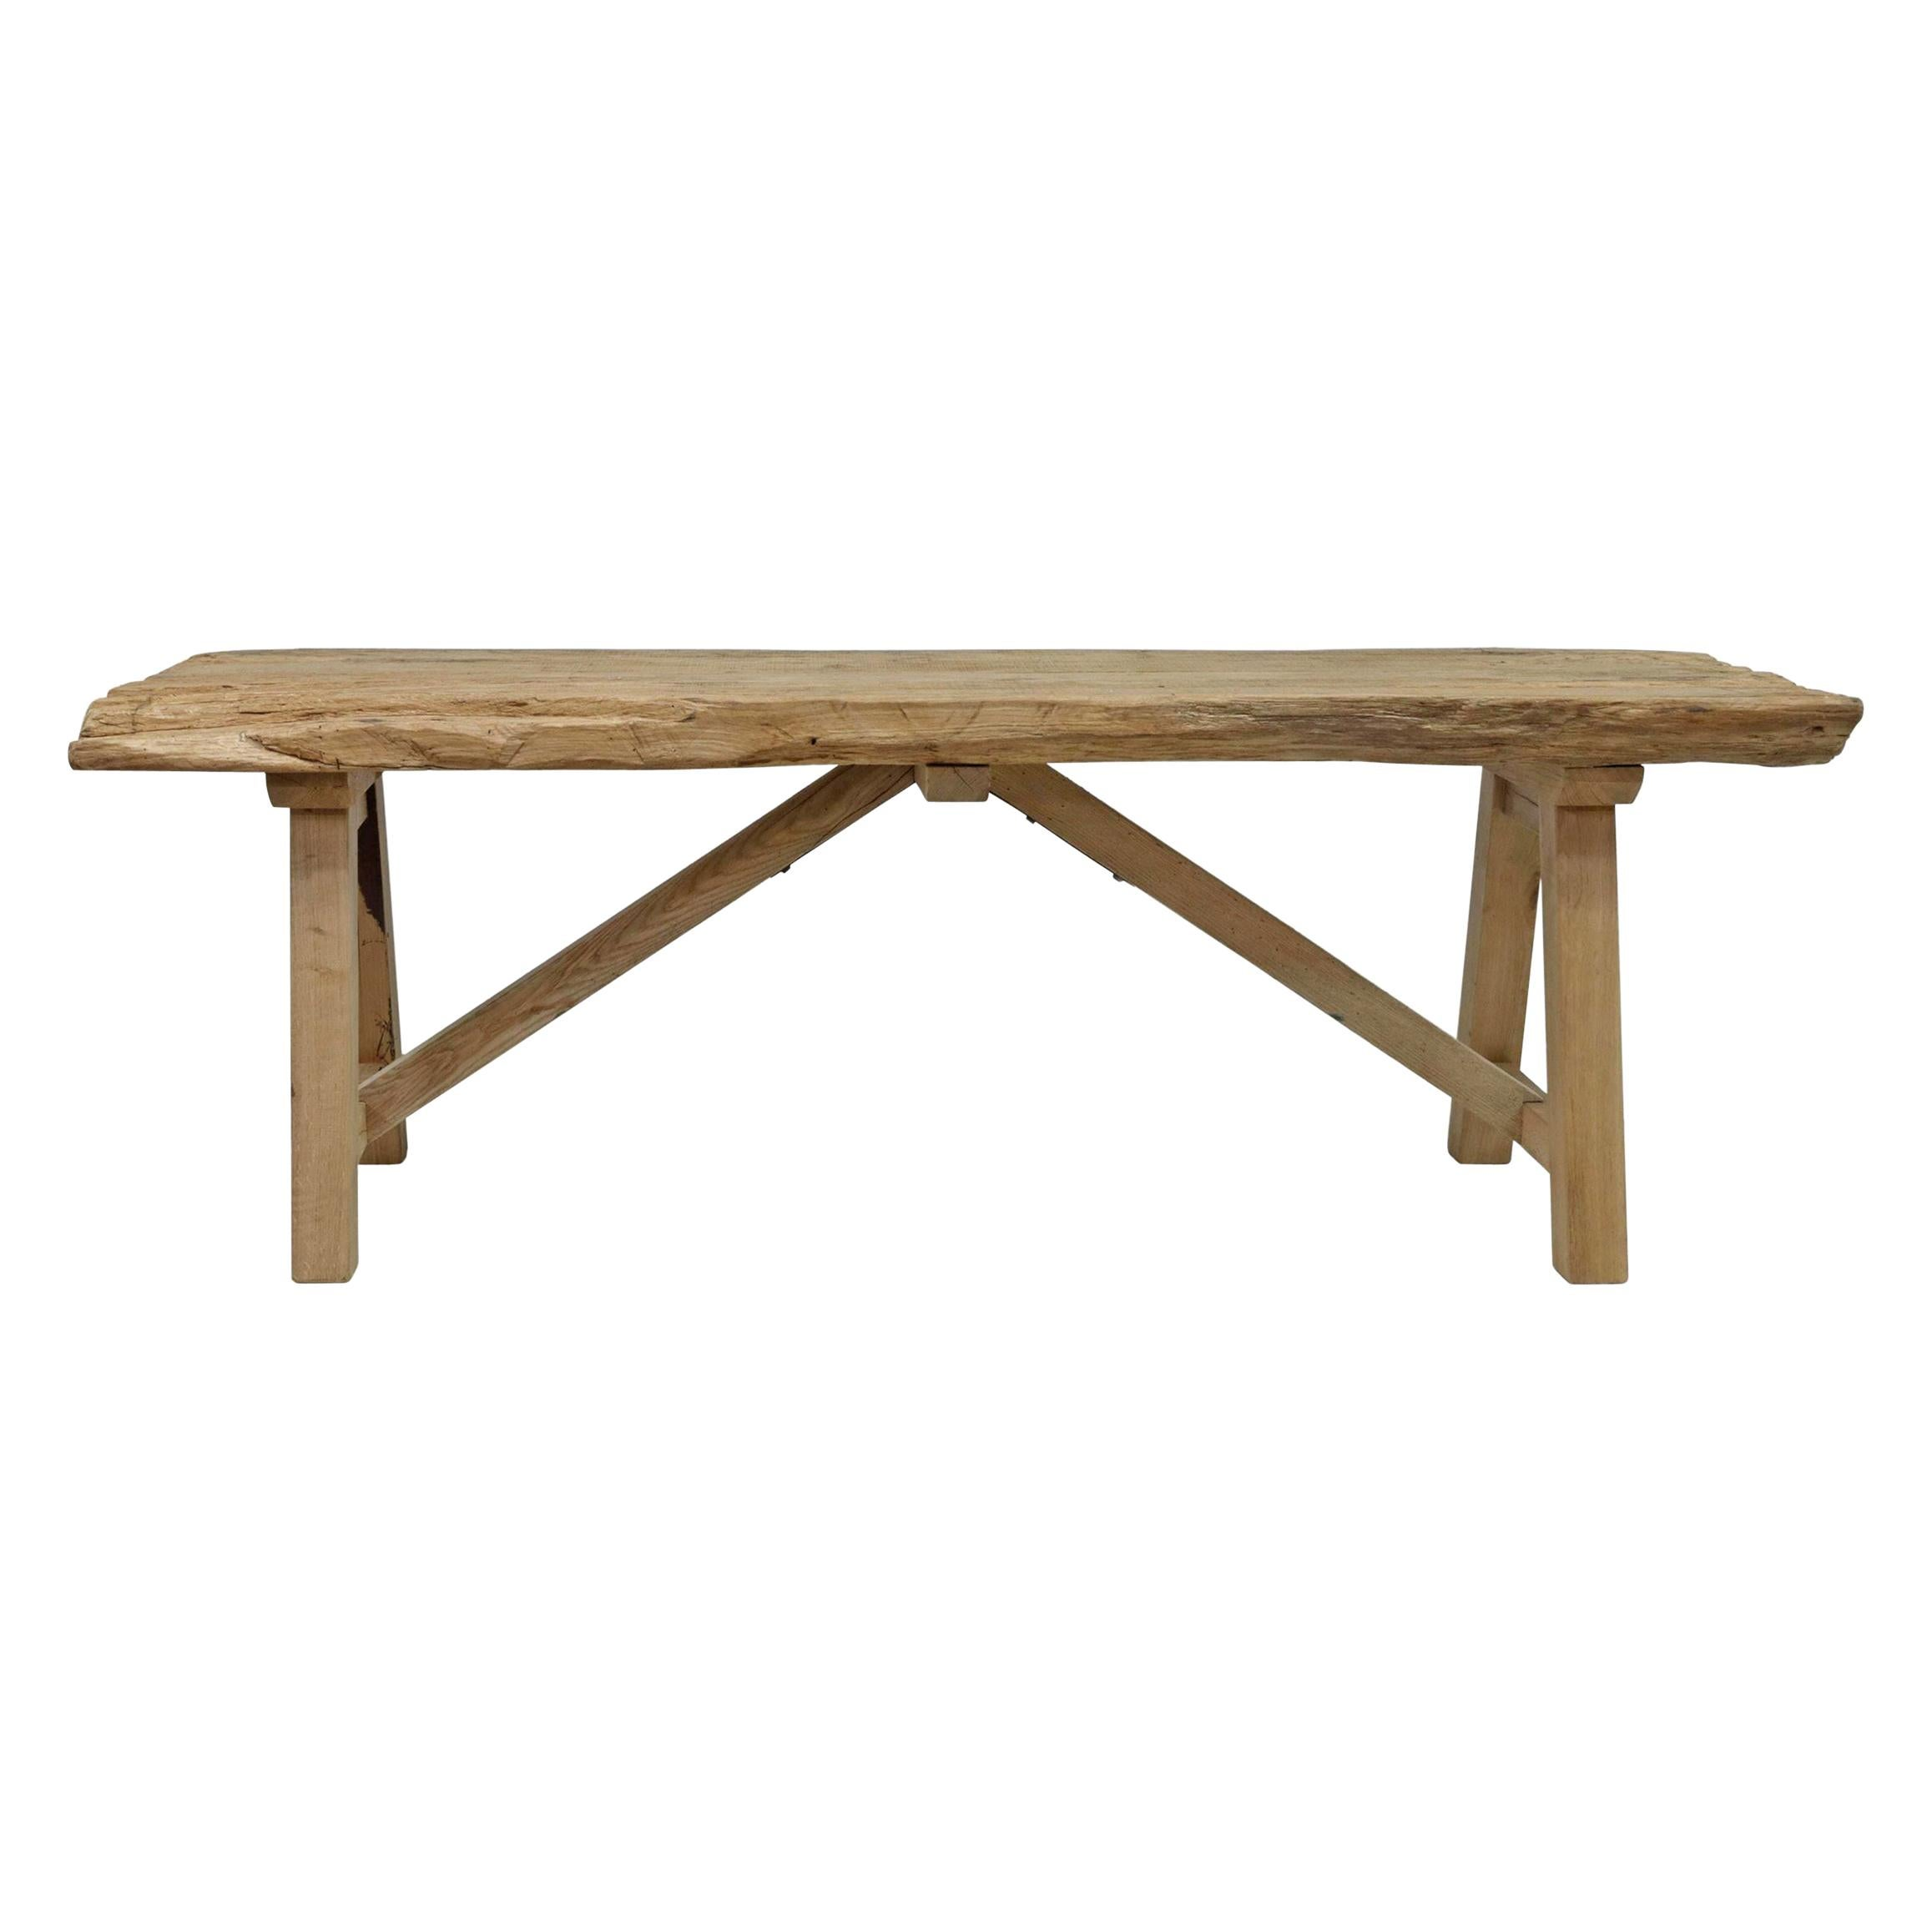 20th Century American Trestle Table